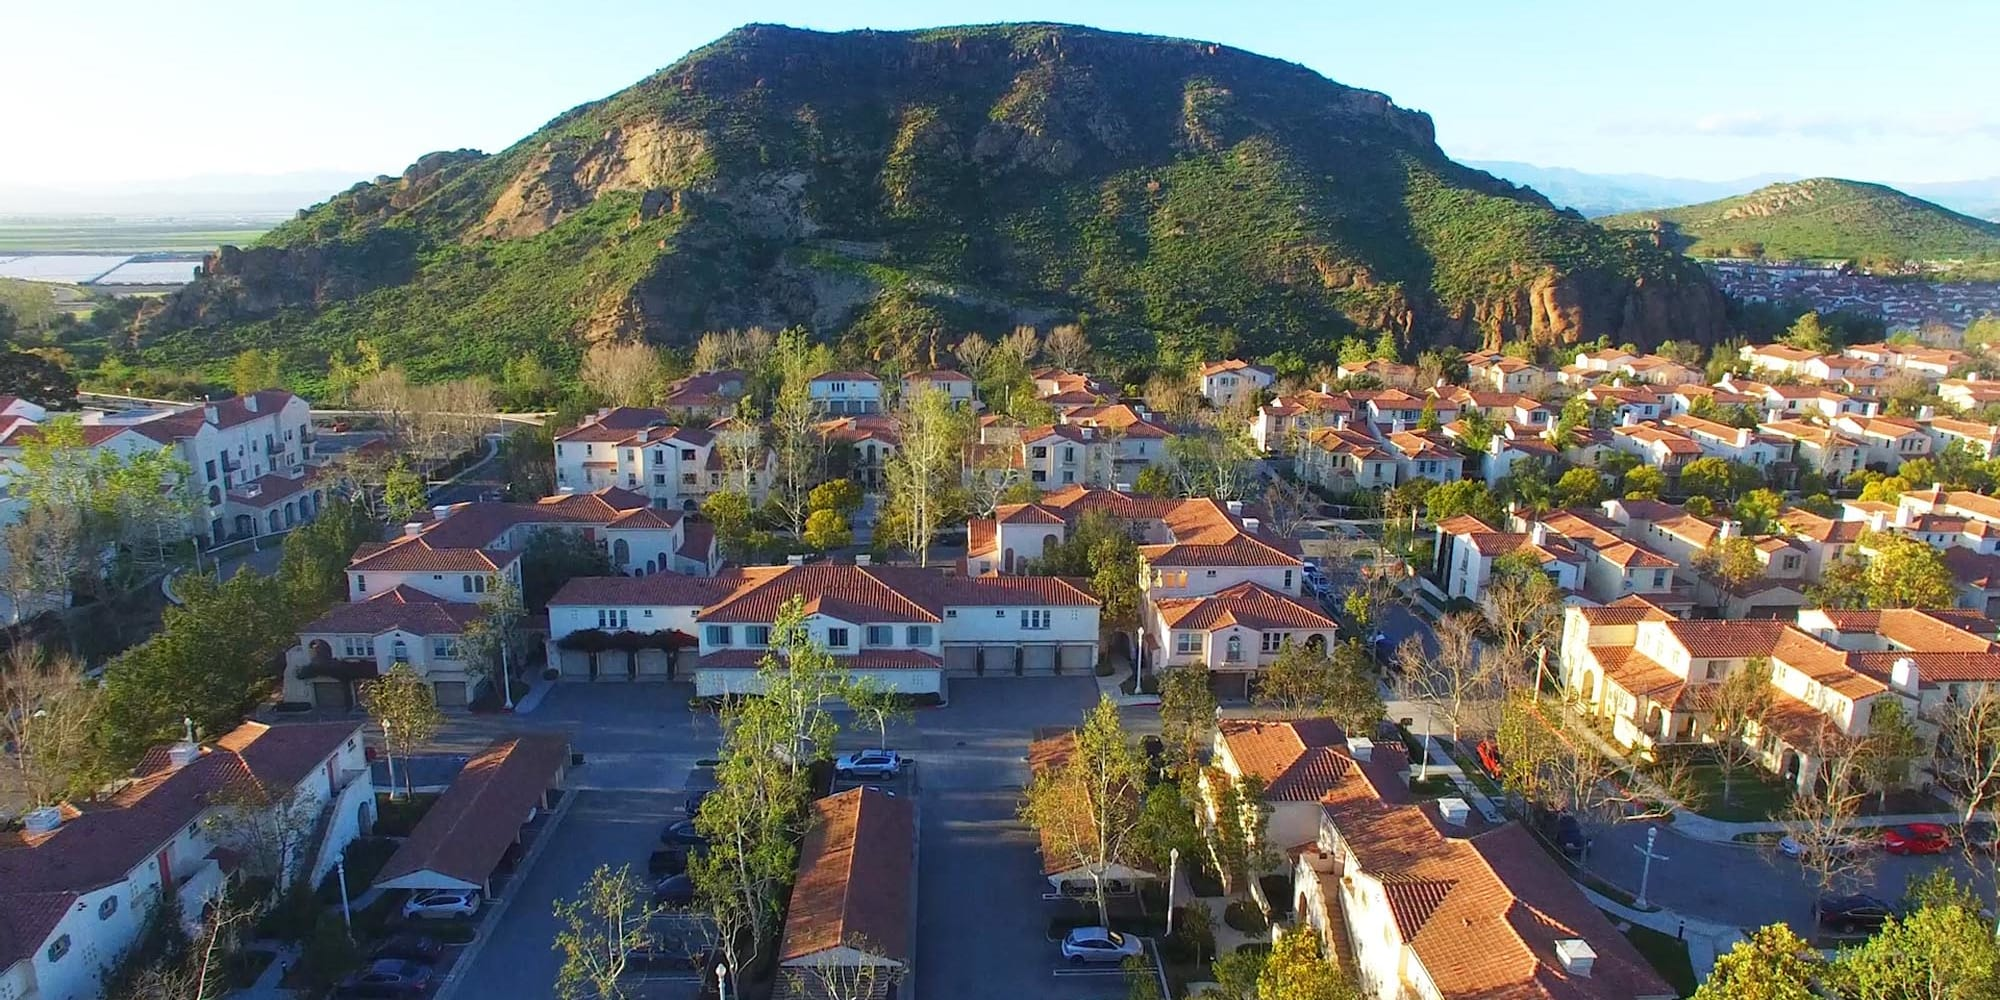 Aerial view of our luxury mission-style community at Mission Hills in Camarillo, California